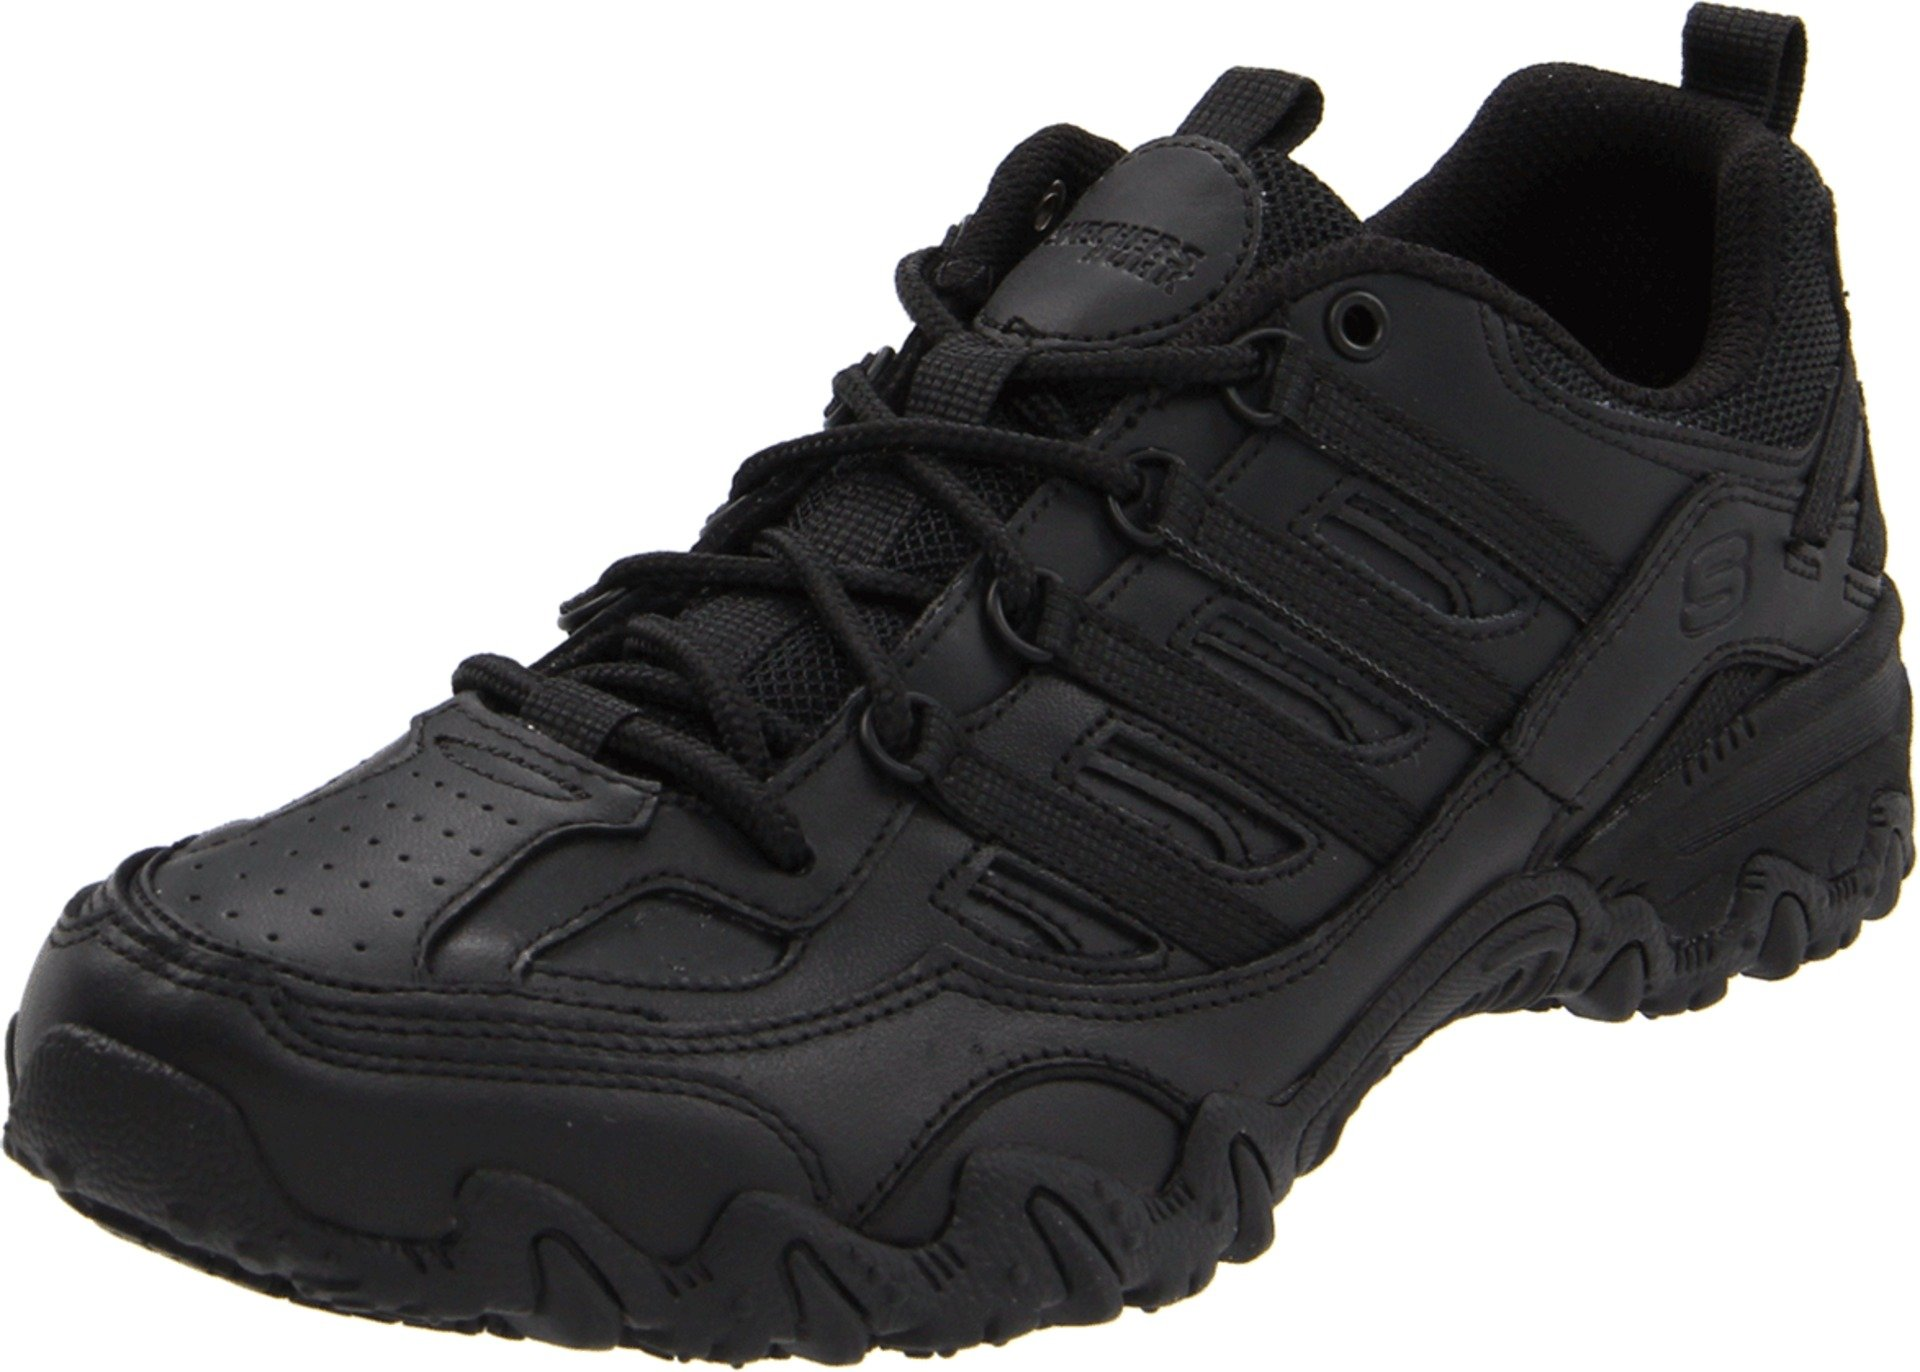 Skechers for Work Women's Compulsions Chant Lace-Up Work Shoe, Black, 8.5 M US by Skechers